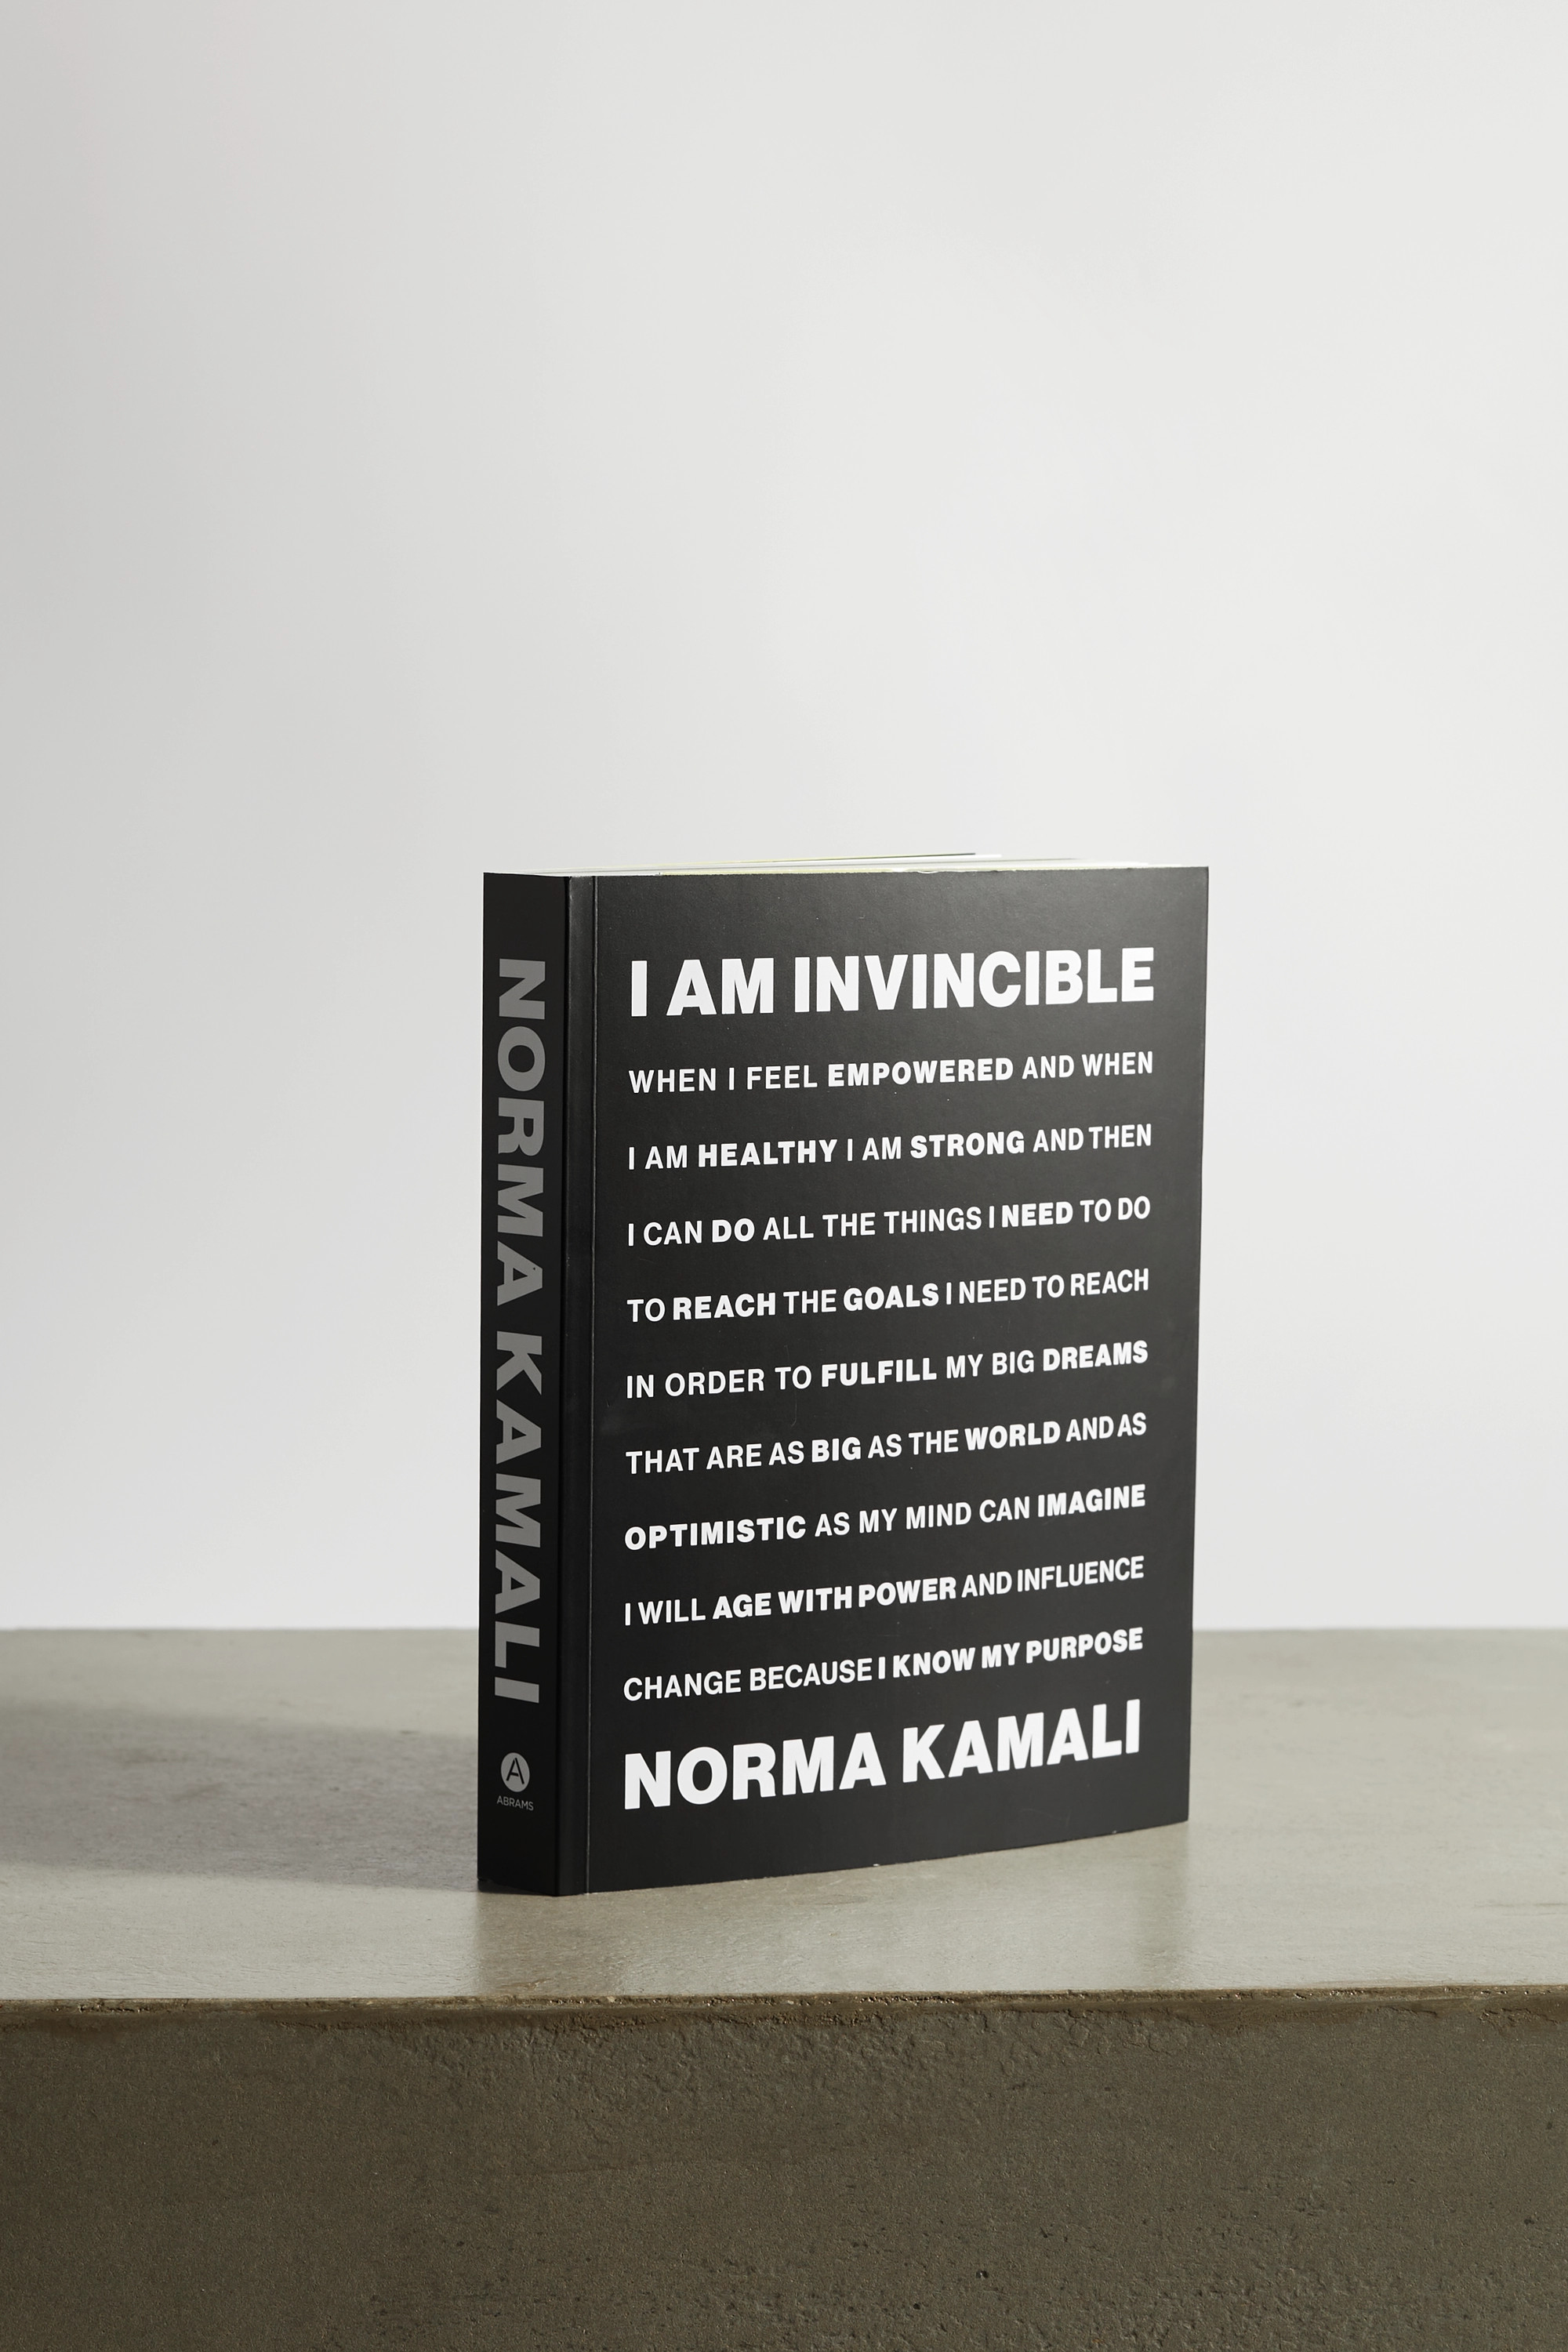 Abrams I Am Invincible by Norma Kamali paperback book